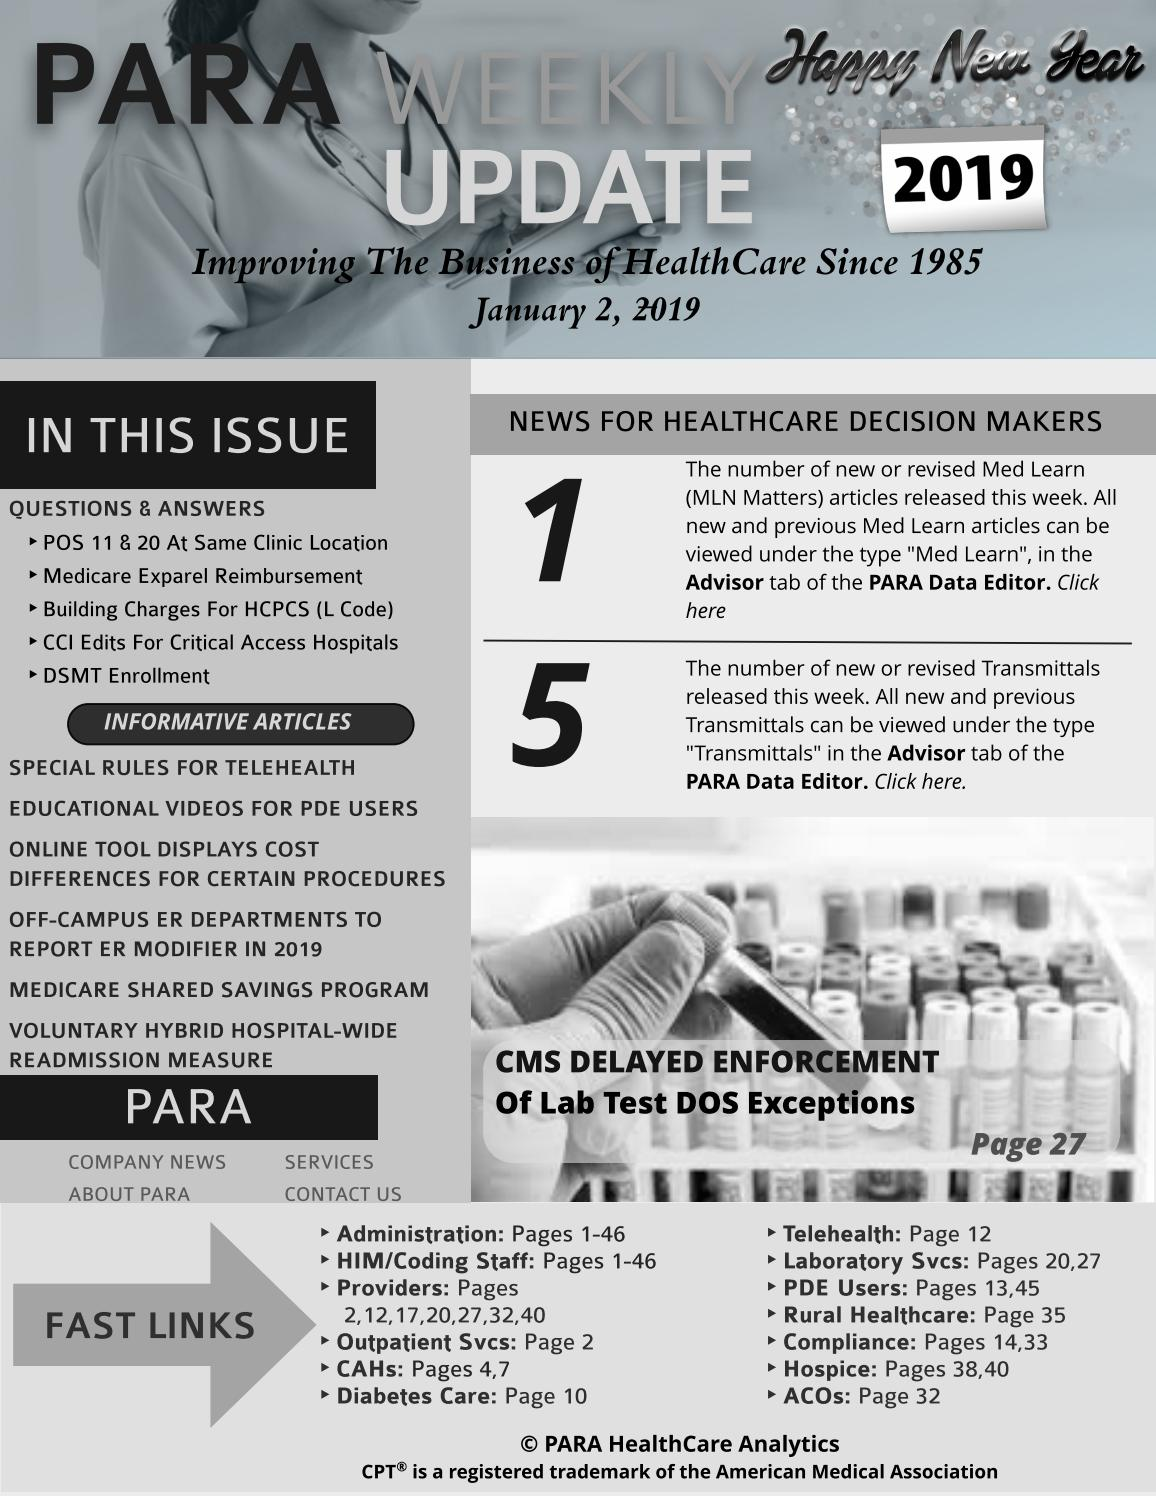 PARA Weekly Update For Users Grayscale Version 1/2/2019 by